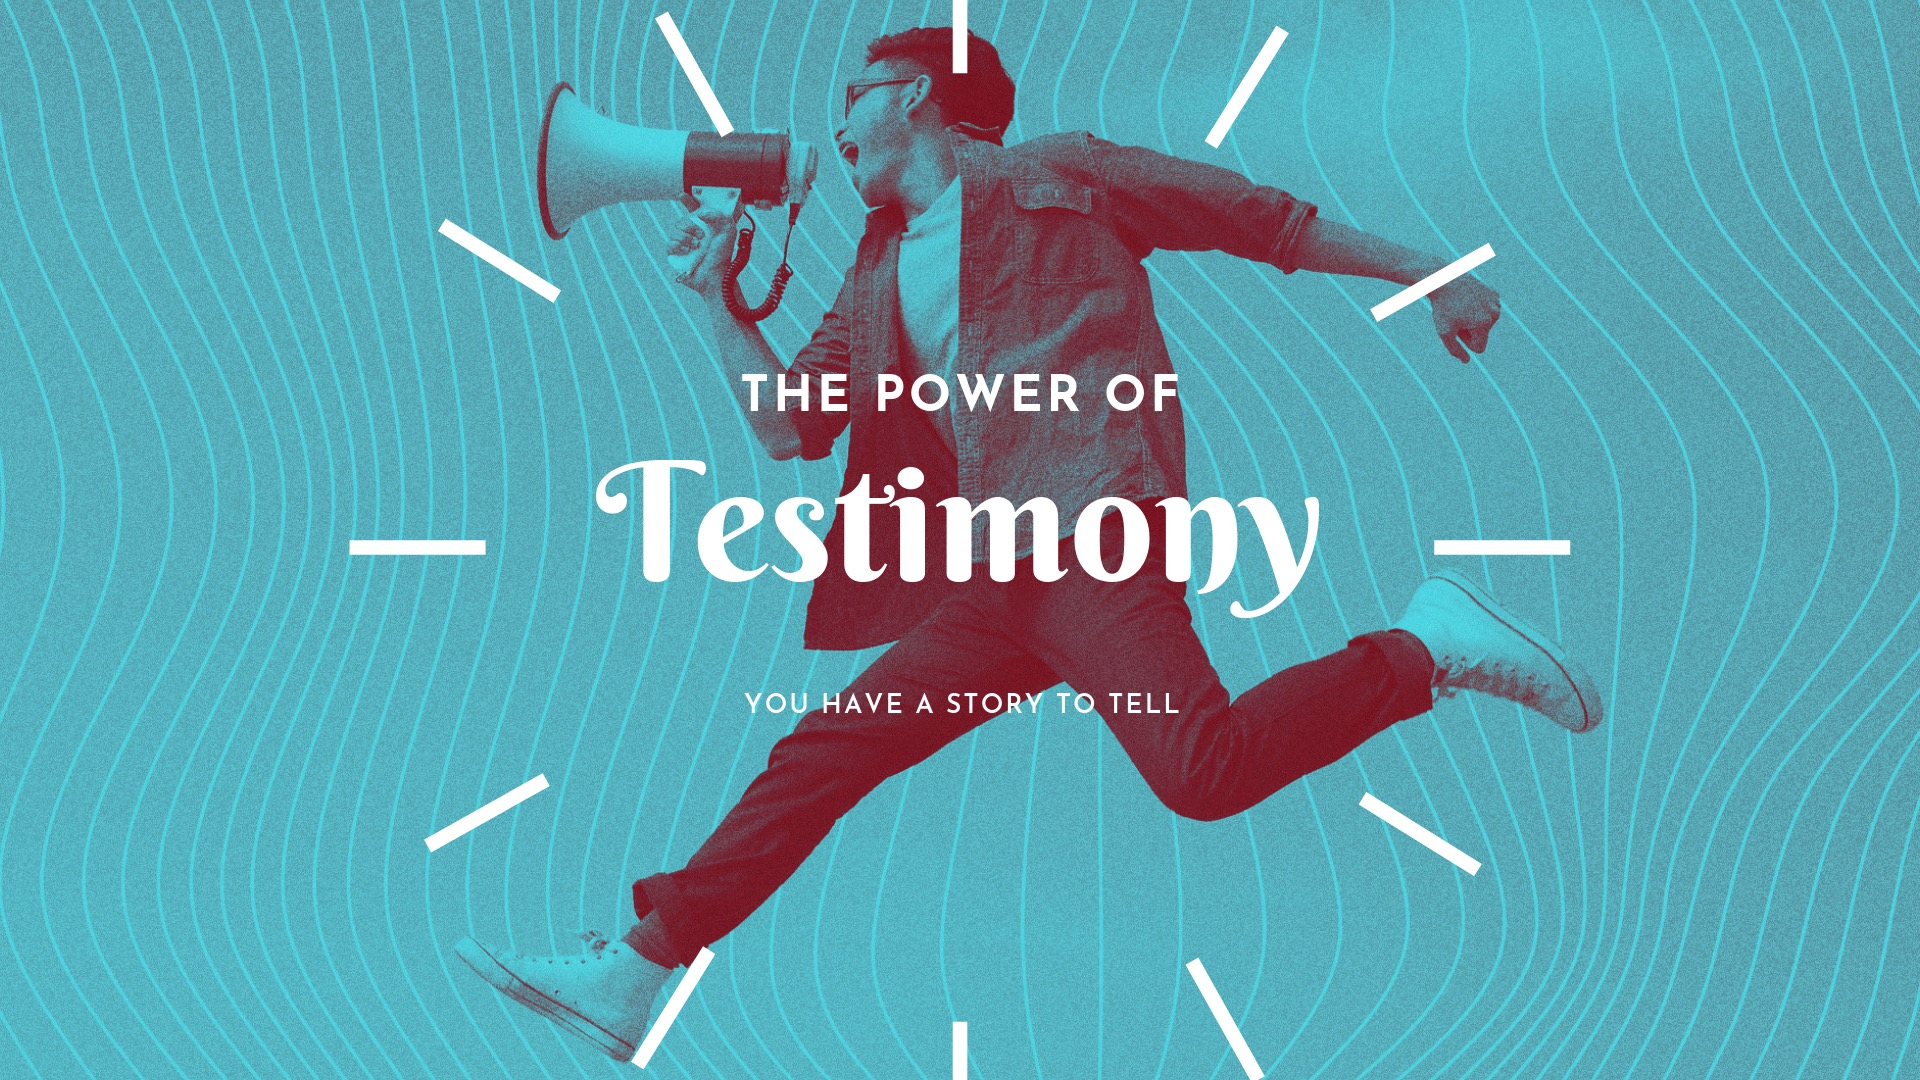 The Power of Testimony Message Slide.JPG